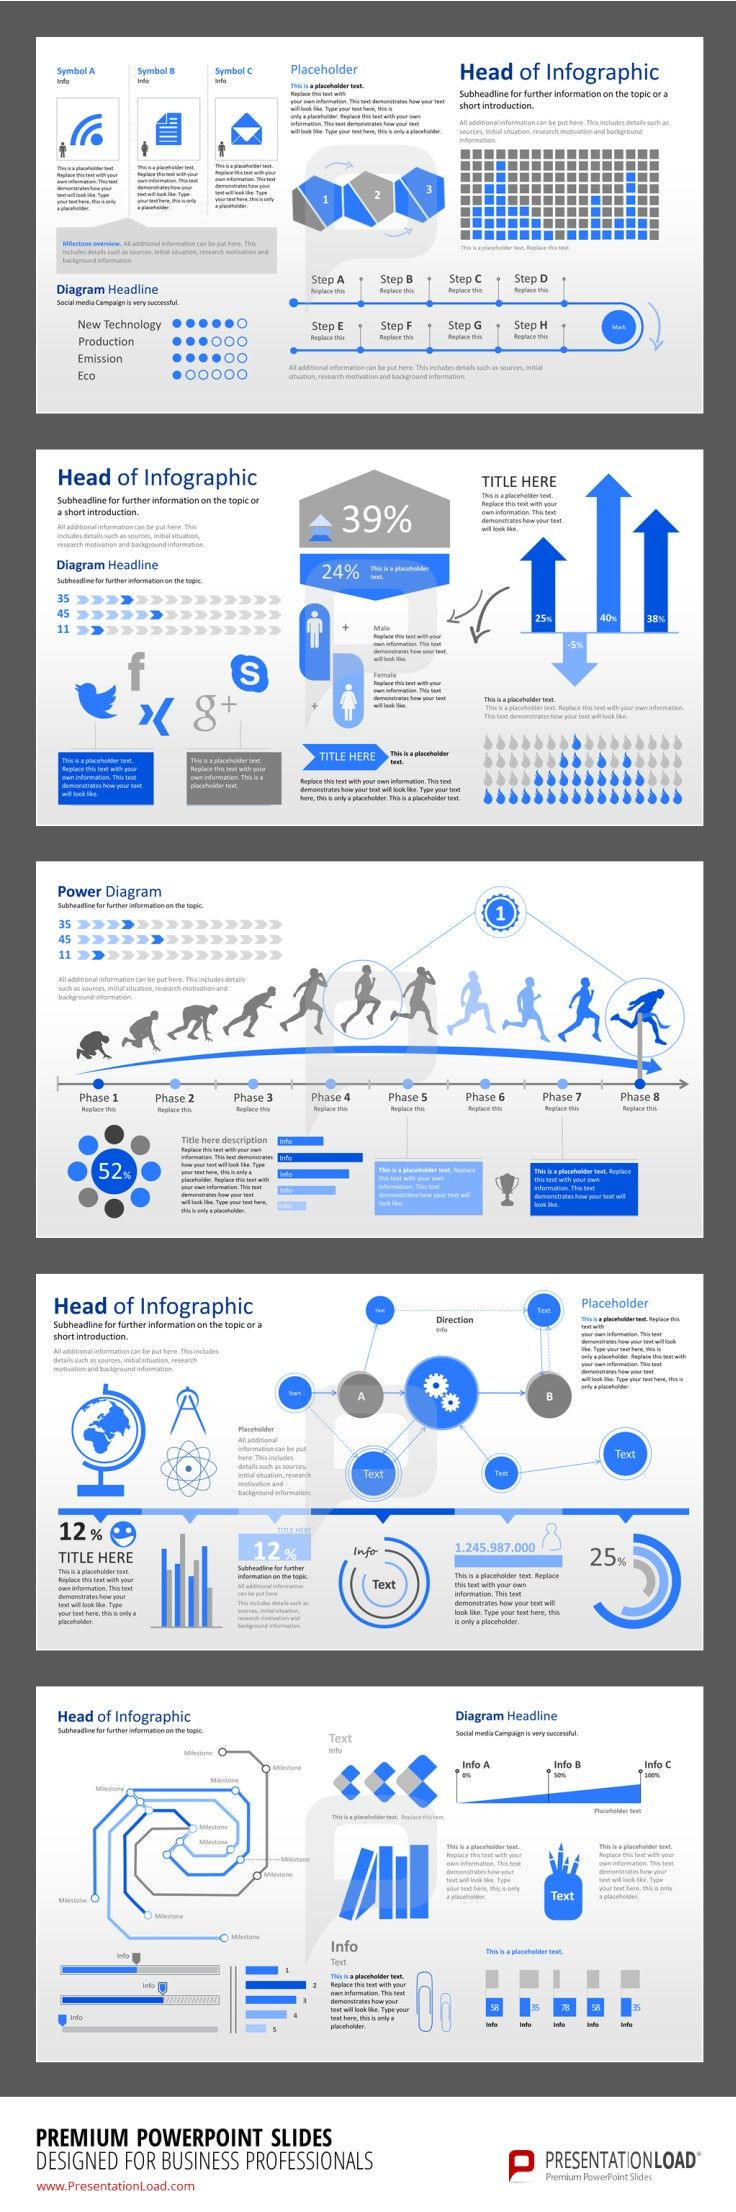 Infographic PowerPoint Templates Use Poll Charts, Thermometer Charts, Column Charts or Donut Charts to easily visualize important data. #presentationload www.presentationl...